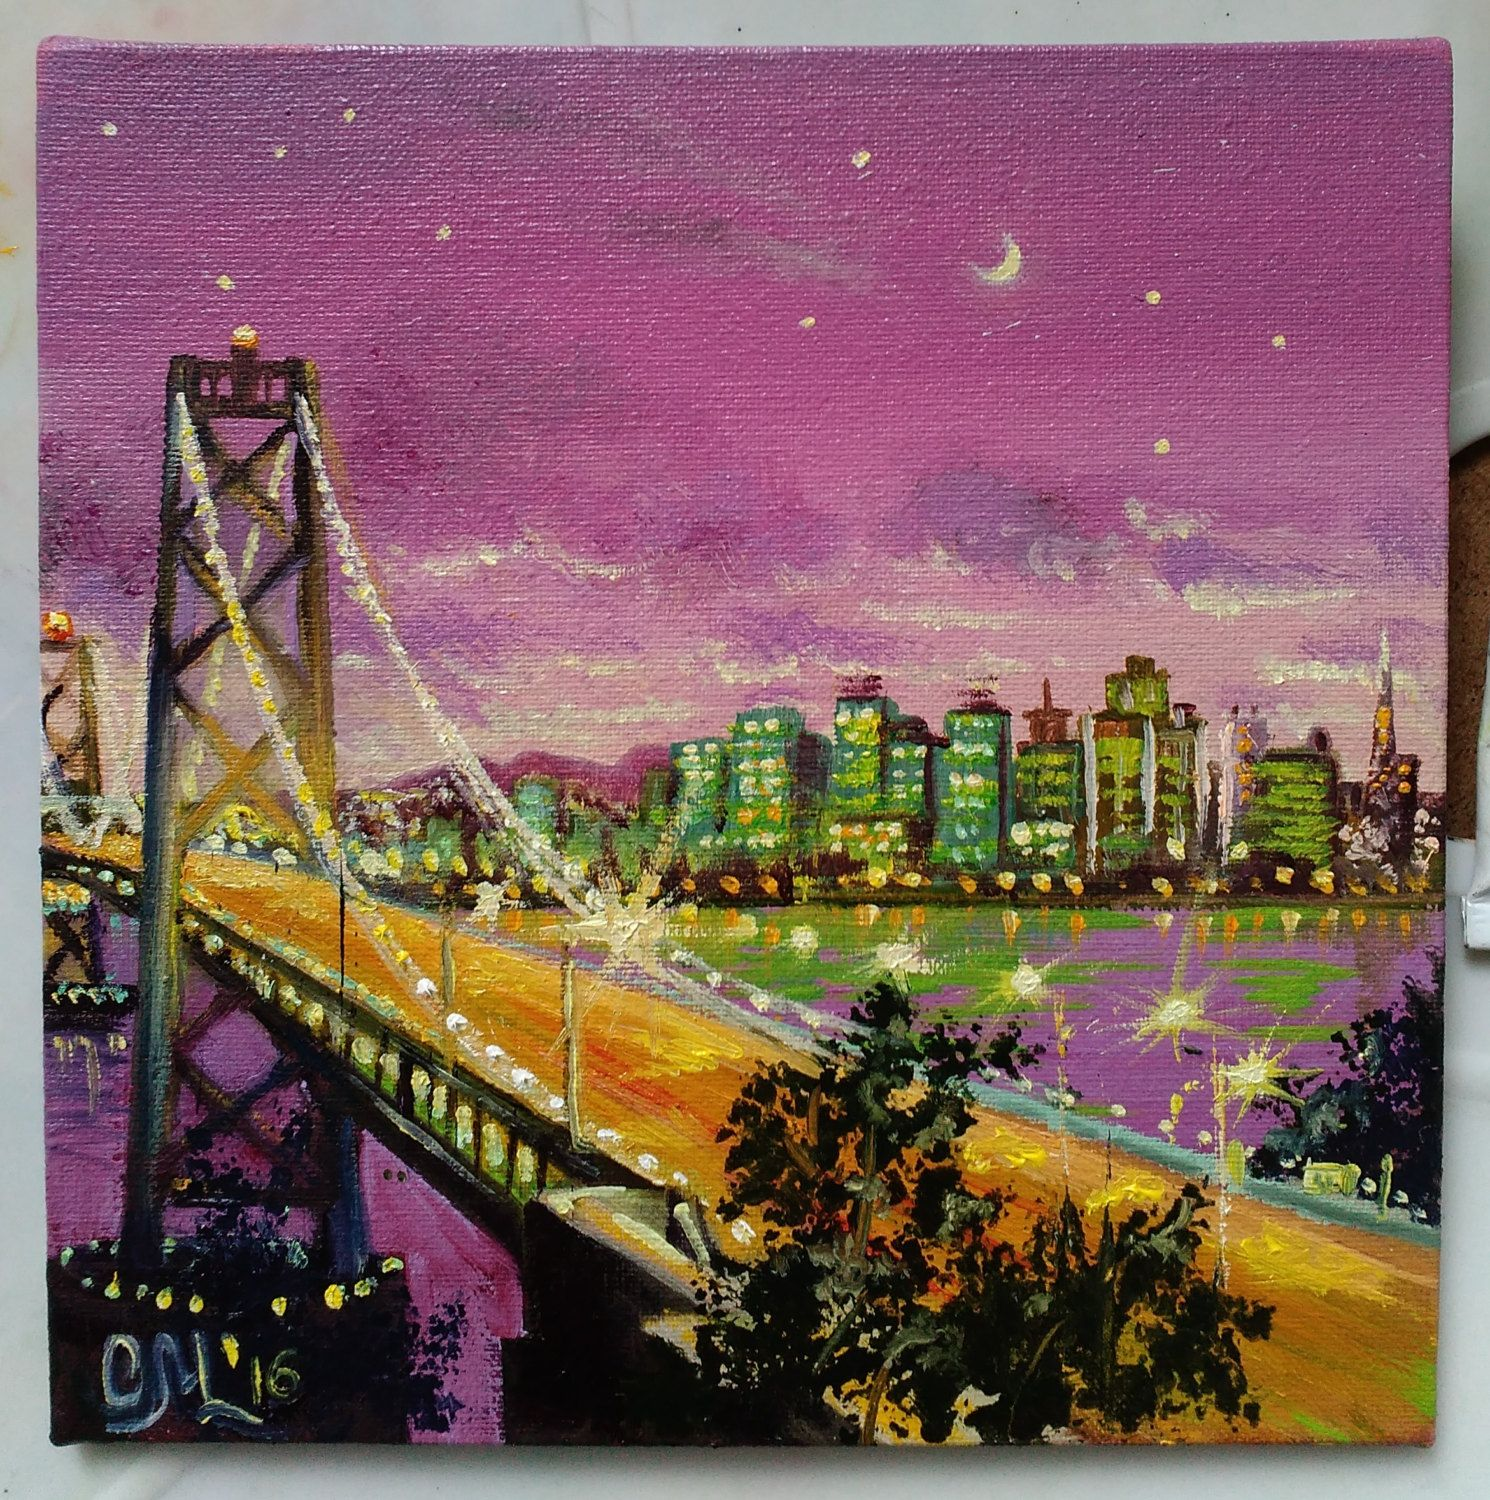 Home interiors and gifts paintings - Night New York City Painting Nyc Skyline Travel Illustration Manhattan Bridge Gift Boss Home Interior Decor